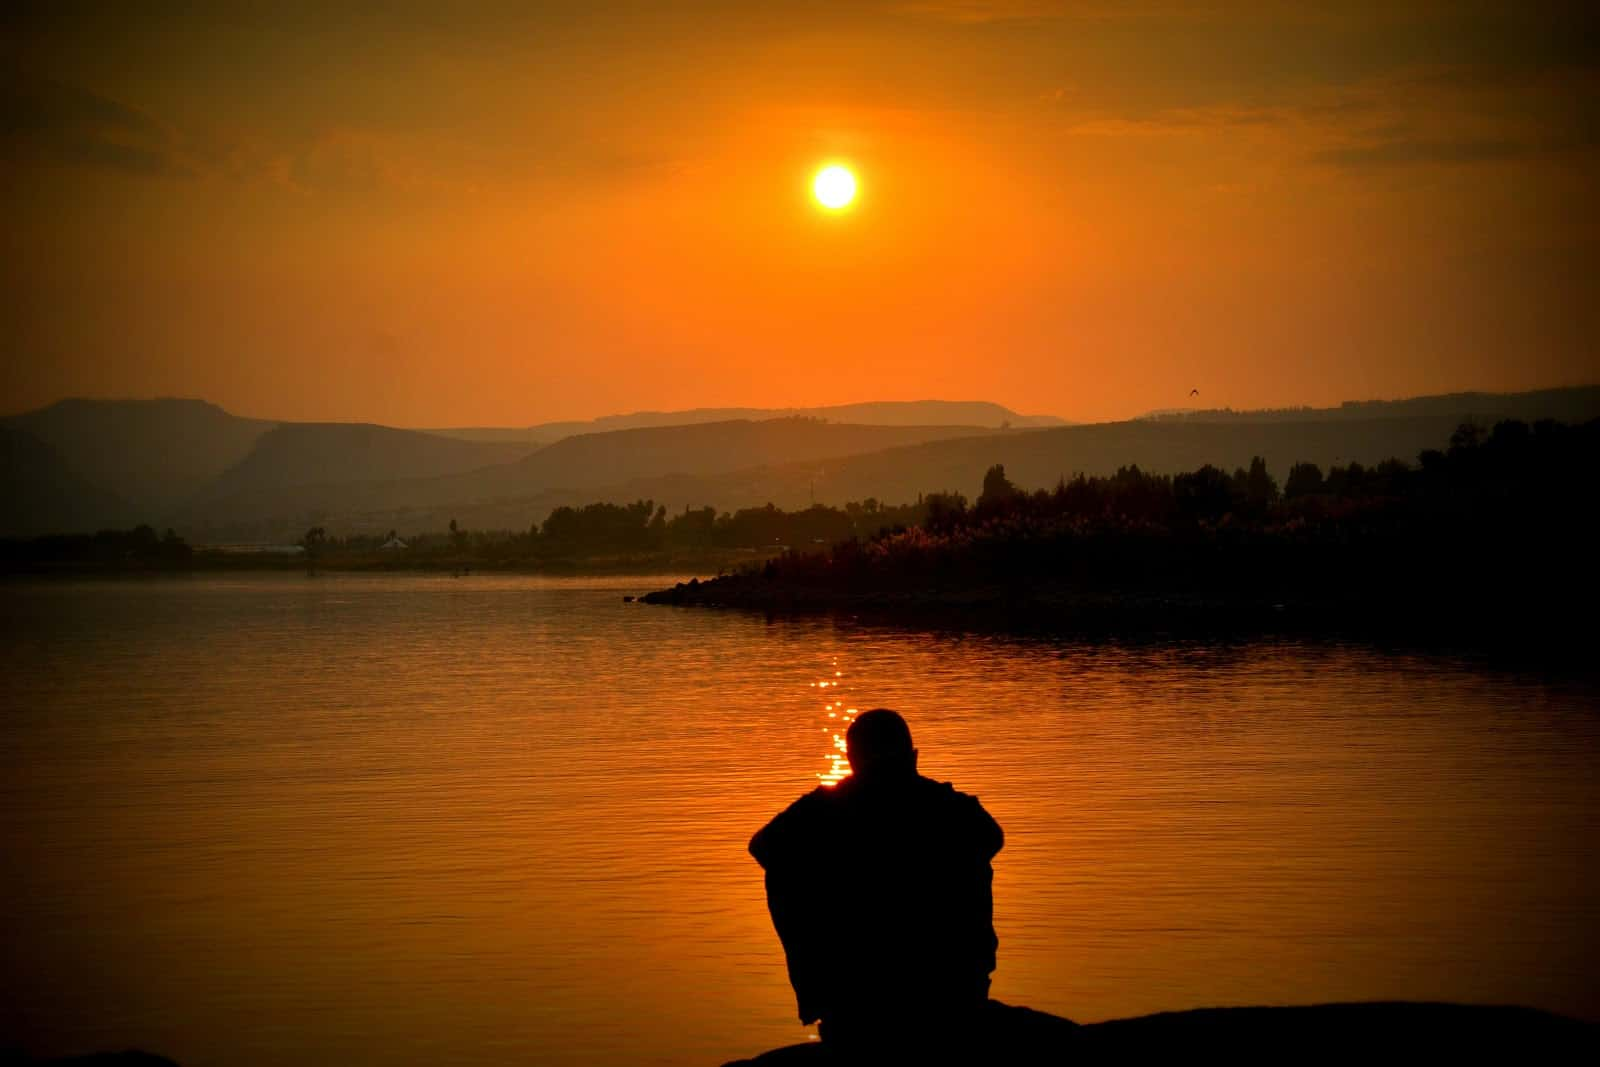 Man viewing beautiful sunset